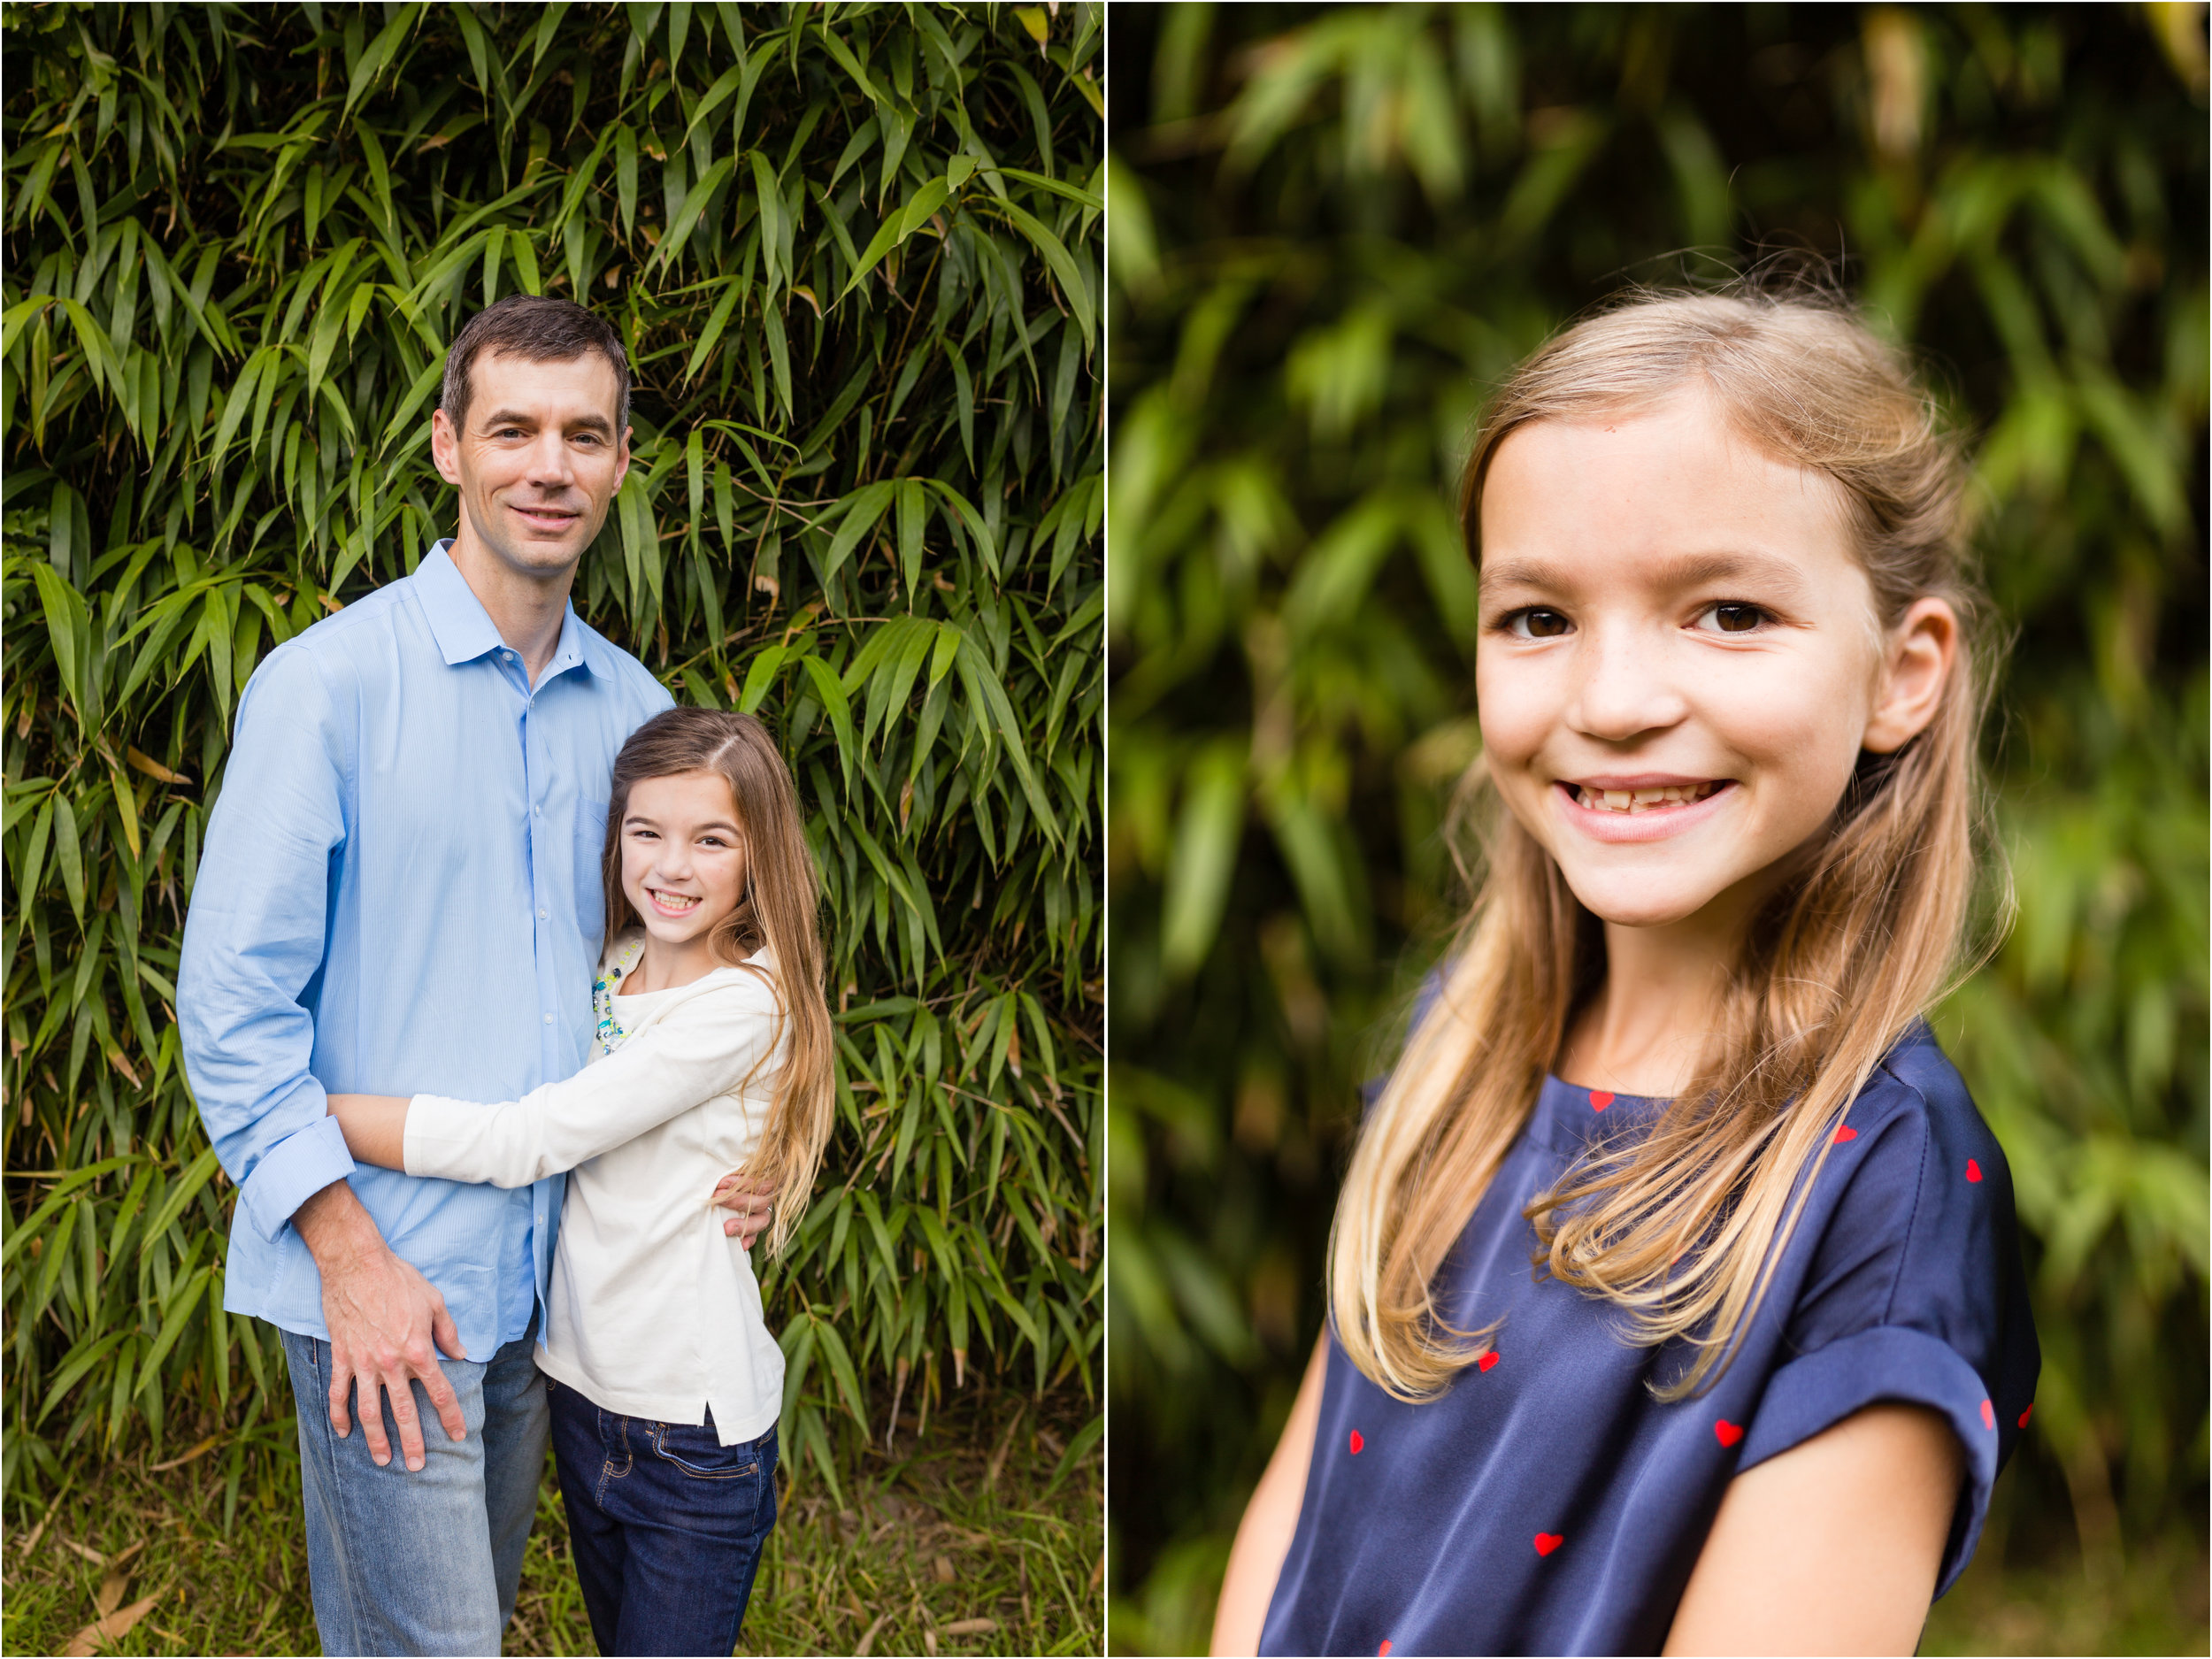 Family-child-portrait-lafayette-broussard-youngsville-photographer-d2.jpg